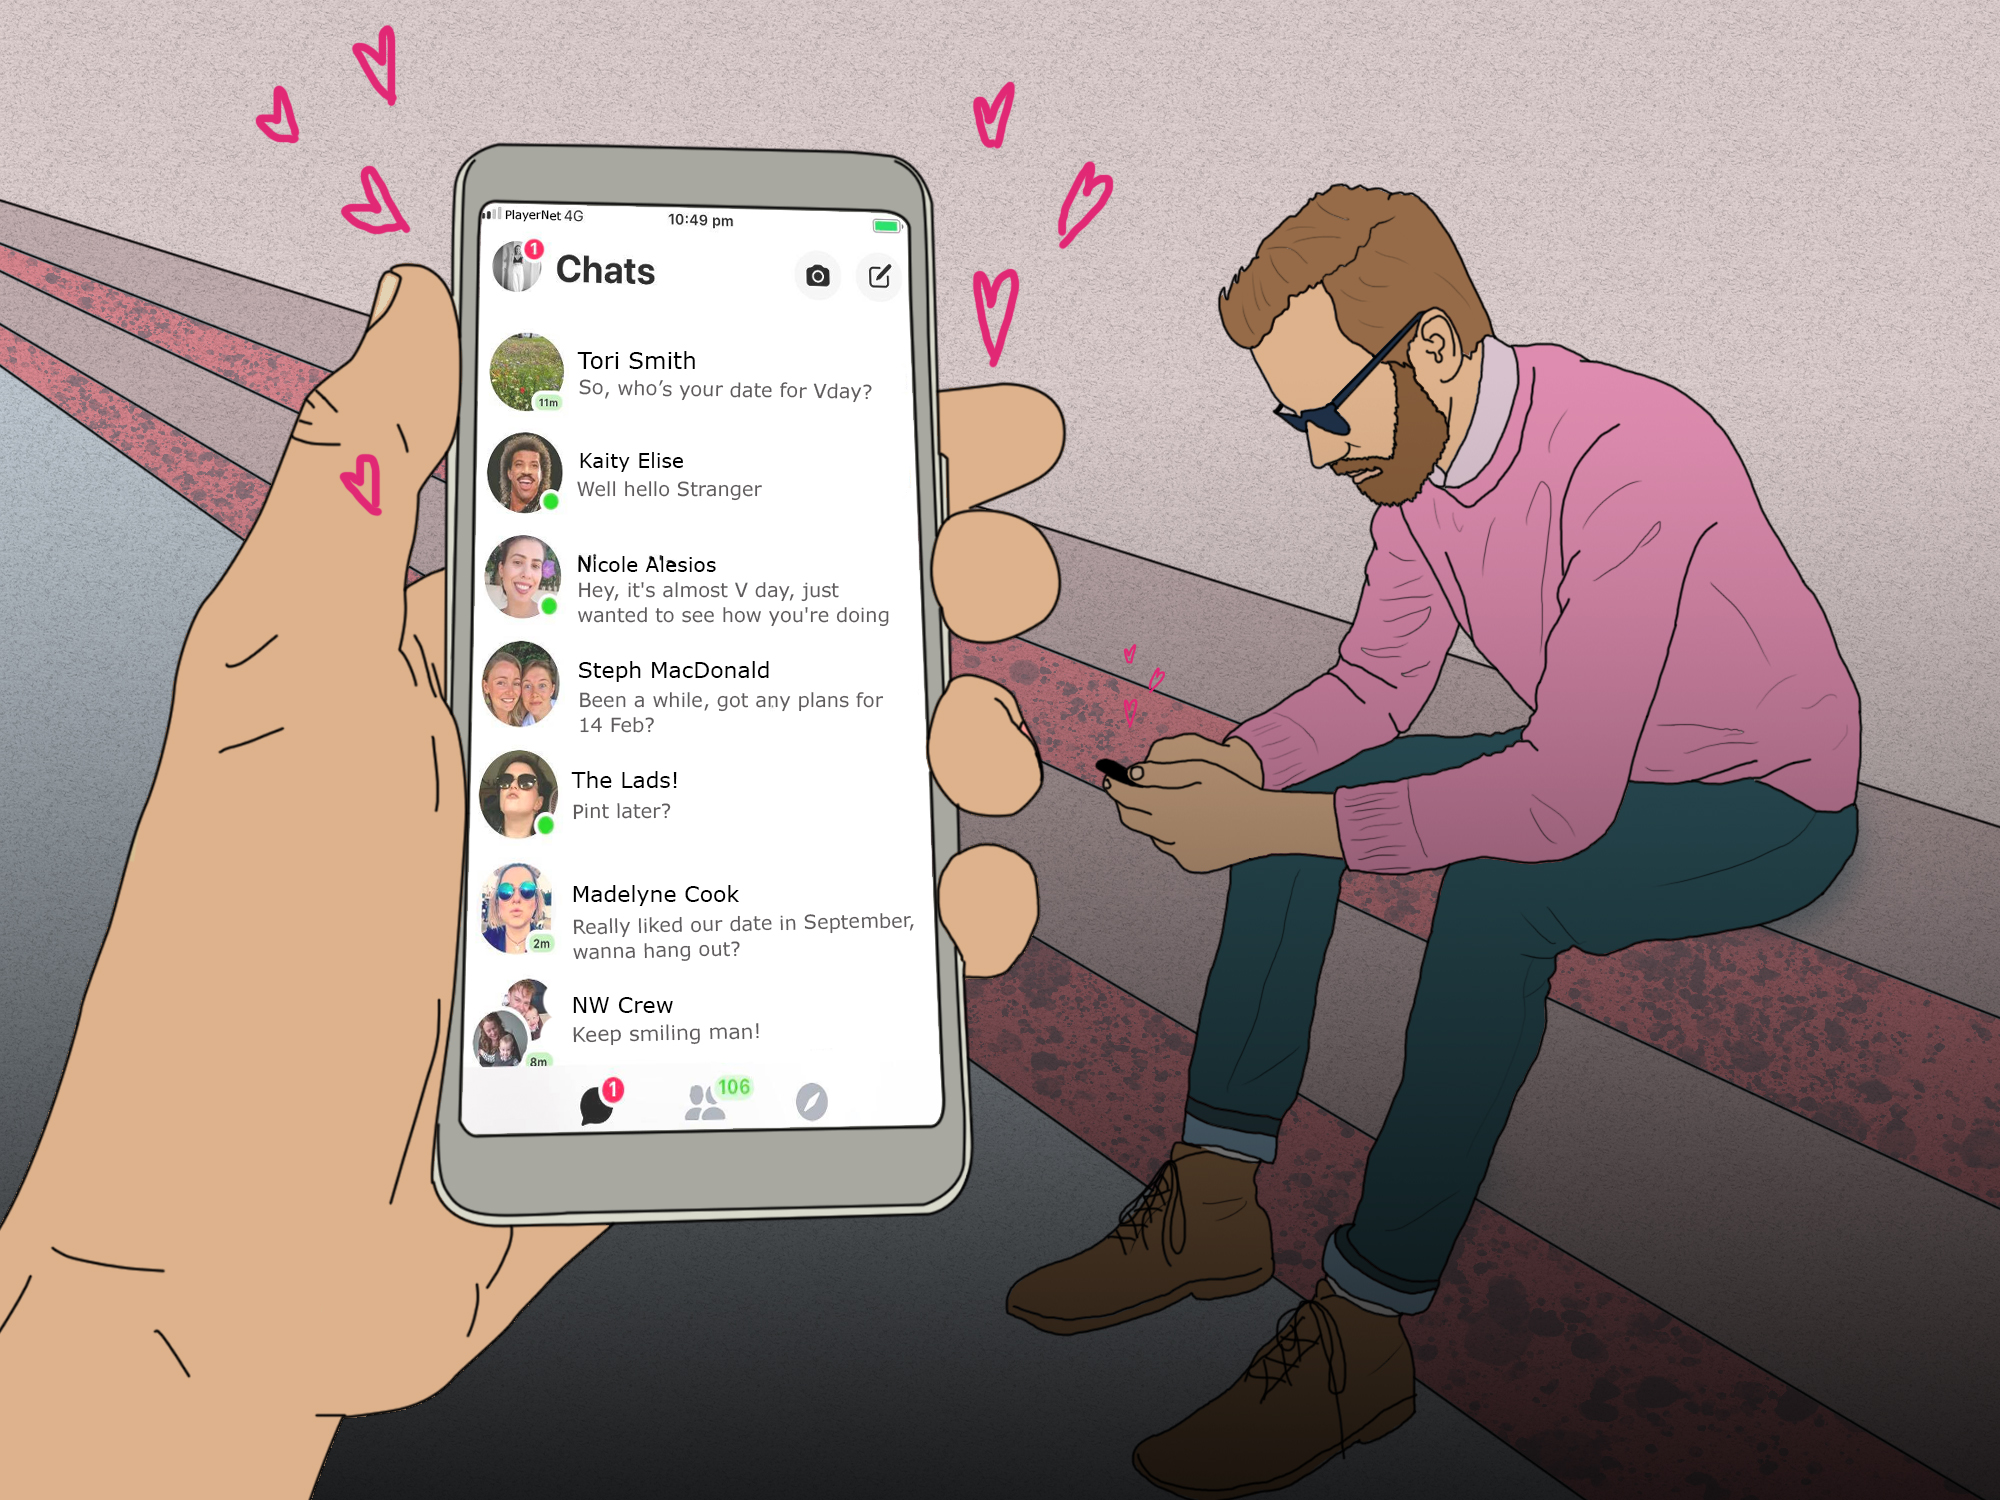 V-lationshipping is the dating trend where old flames reappear for Valentine's Day